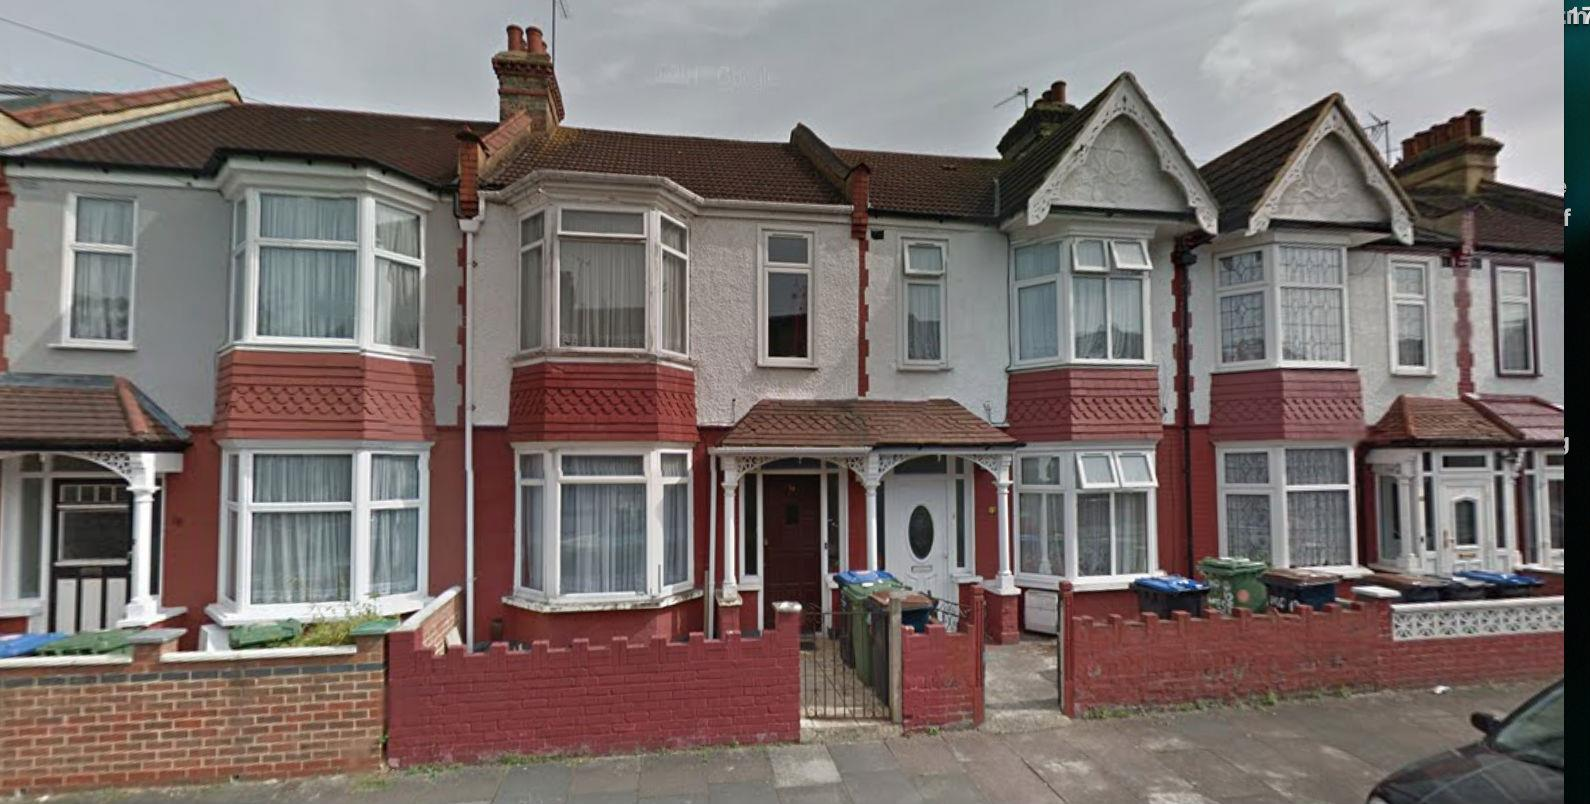 2 Bedroom House For Sale In United Kingdom